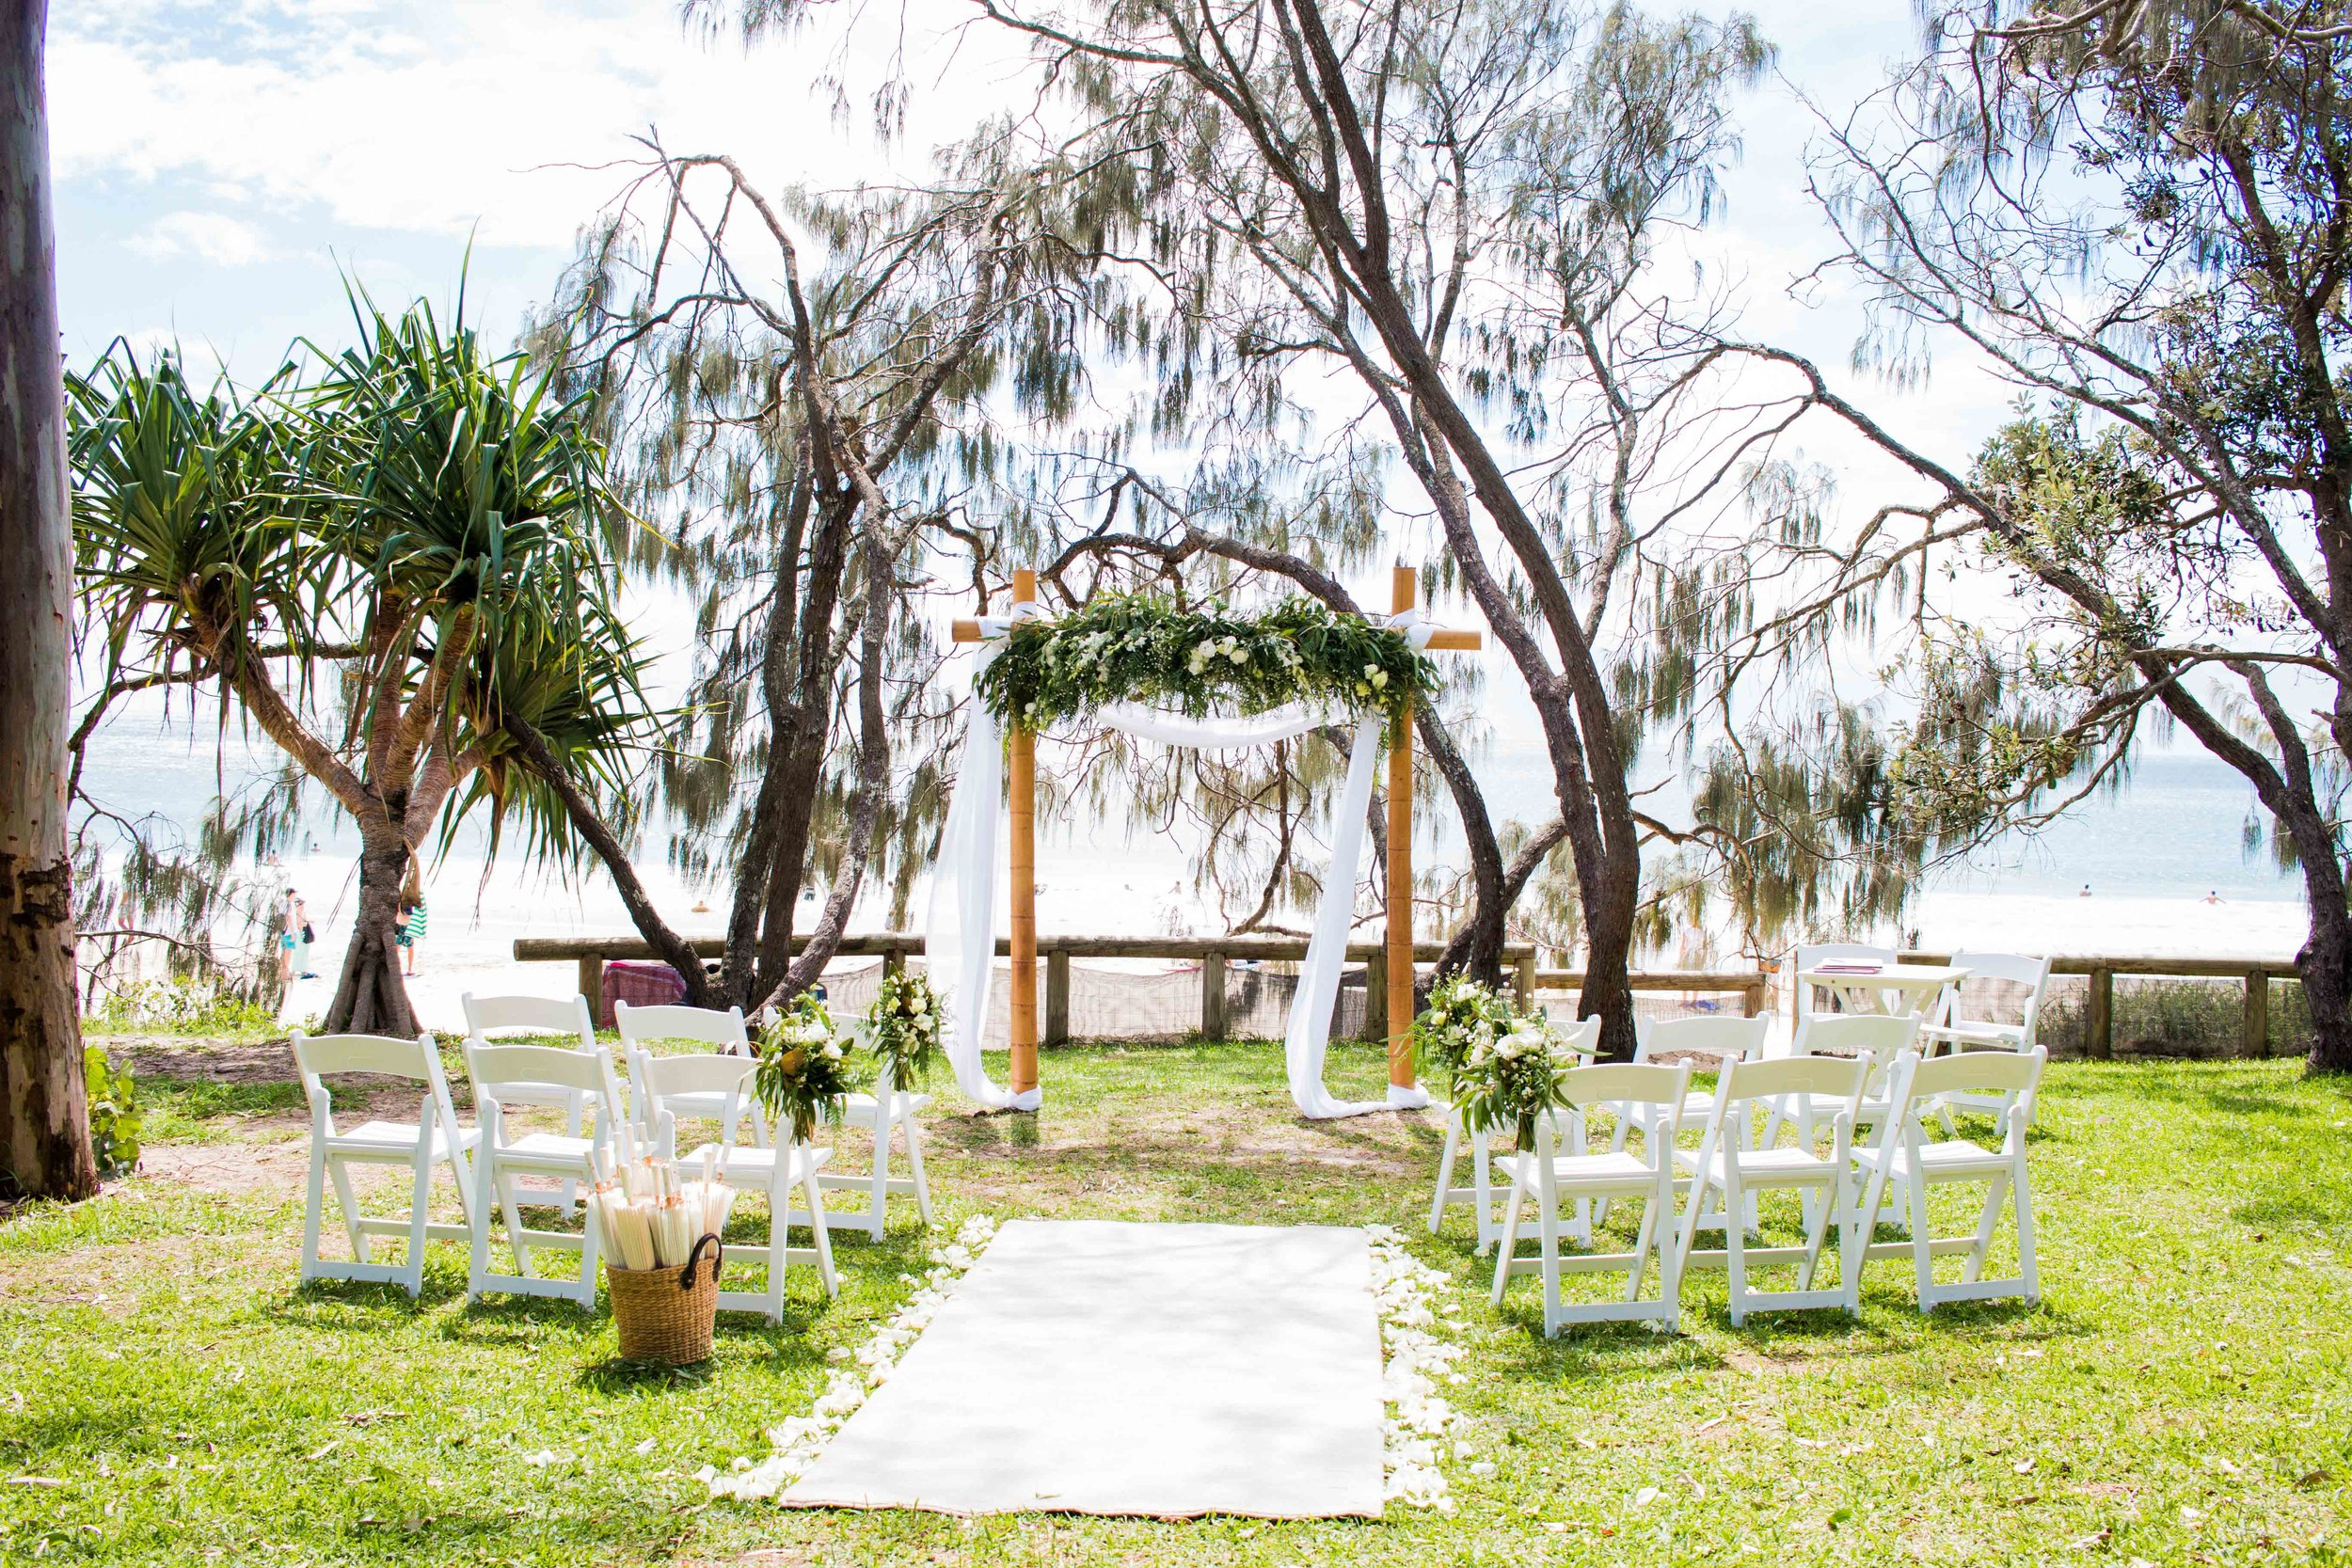 Hidden Grove ~ Noosa Foreshore. Celebrant and Styling Package which includes the above styling décor scene (white and green florals) = $2,320 total cost inclusive of delivery, set up and pack down. Your choice of seasonal flowers which are yours to keep after the ceremony service. Please visit 'Natalie Skye Celebrant' Instagram page for more styling décor inspo.